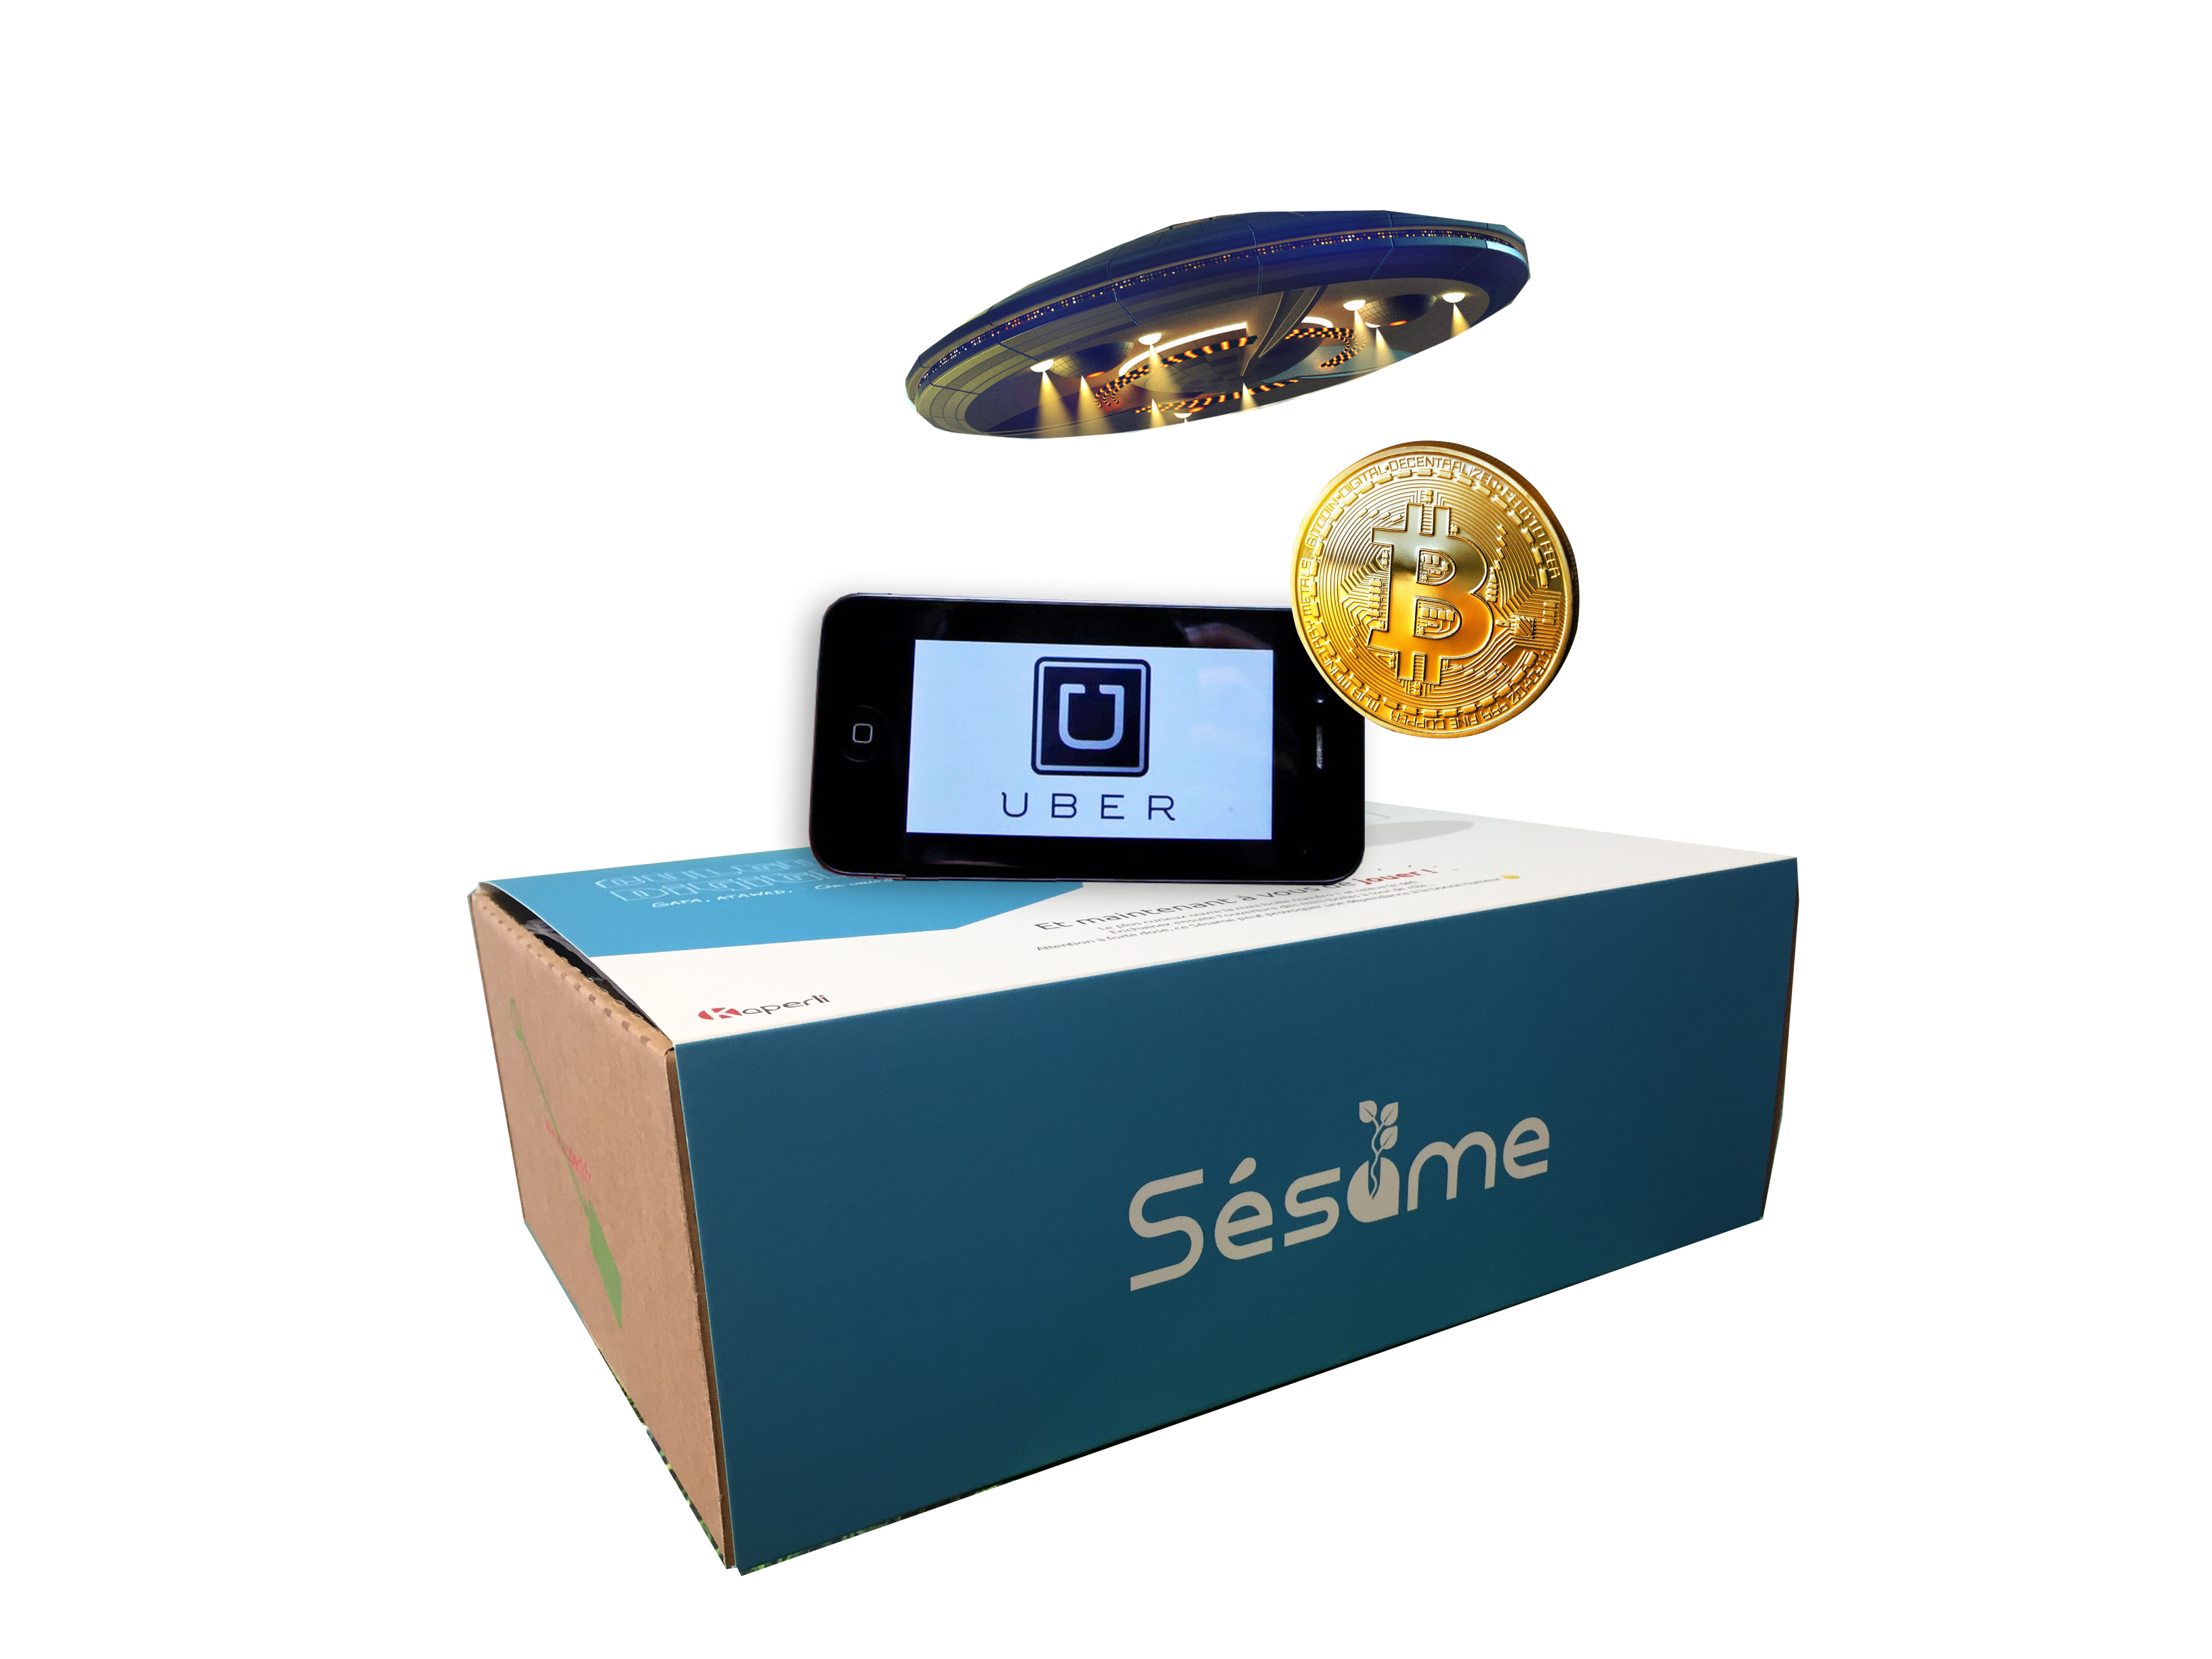 Sésame box culture digitale – Ubérisation, Blockchain, Bitcoin